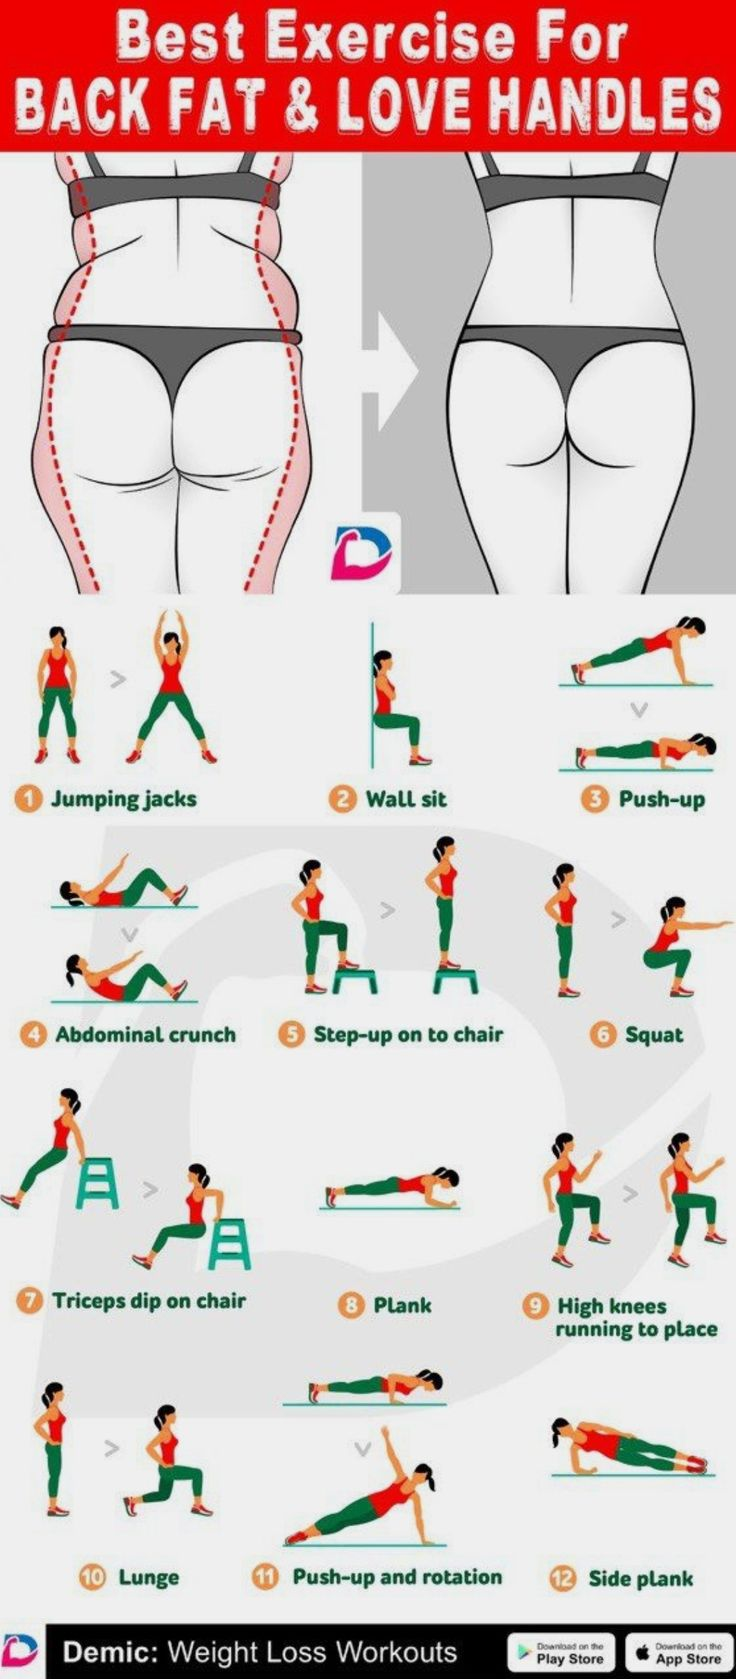 Exercises for Back Fat & Love Handles.